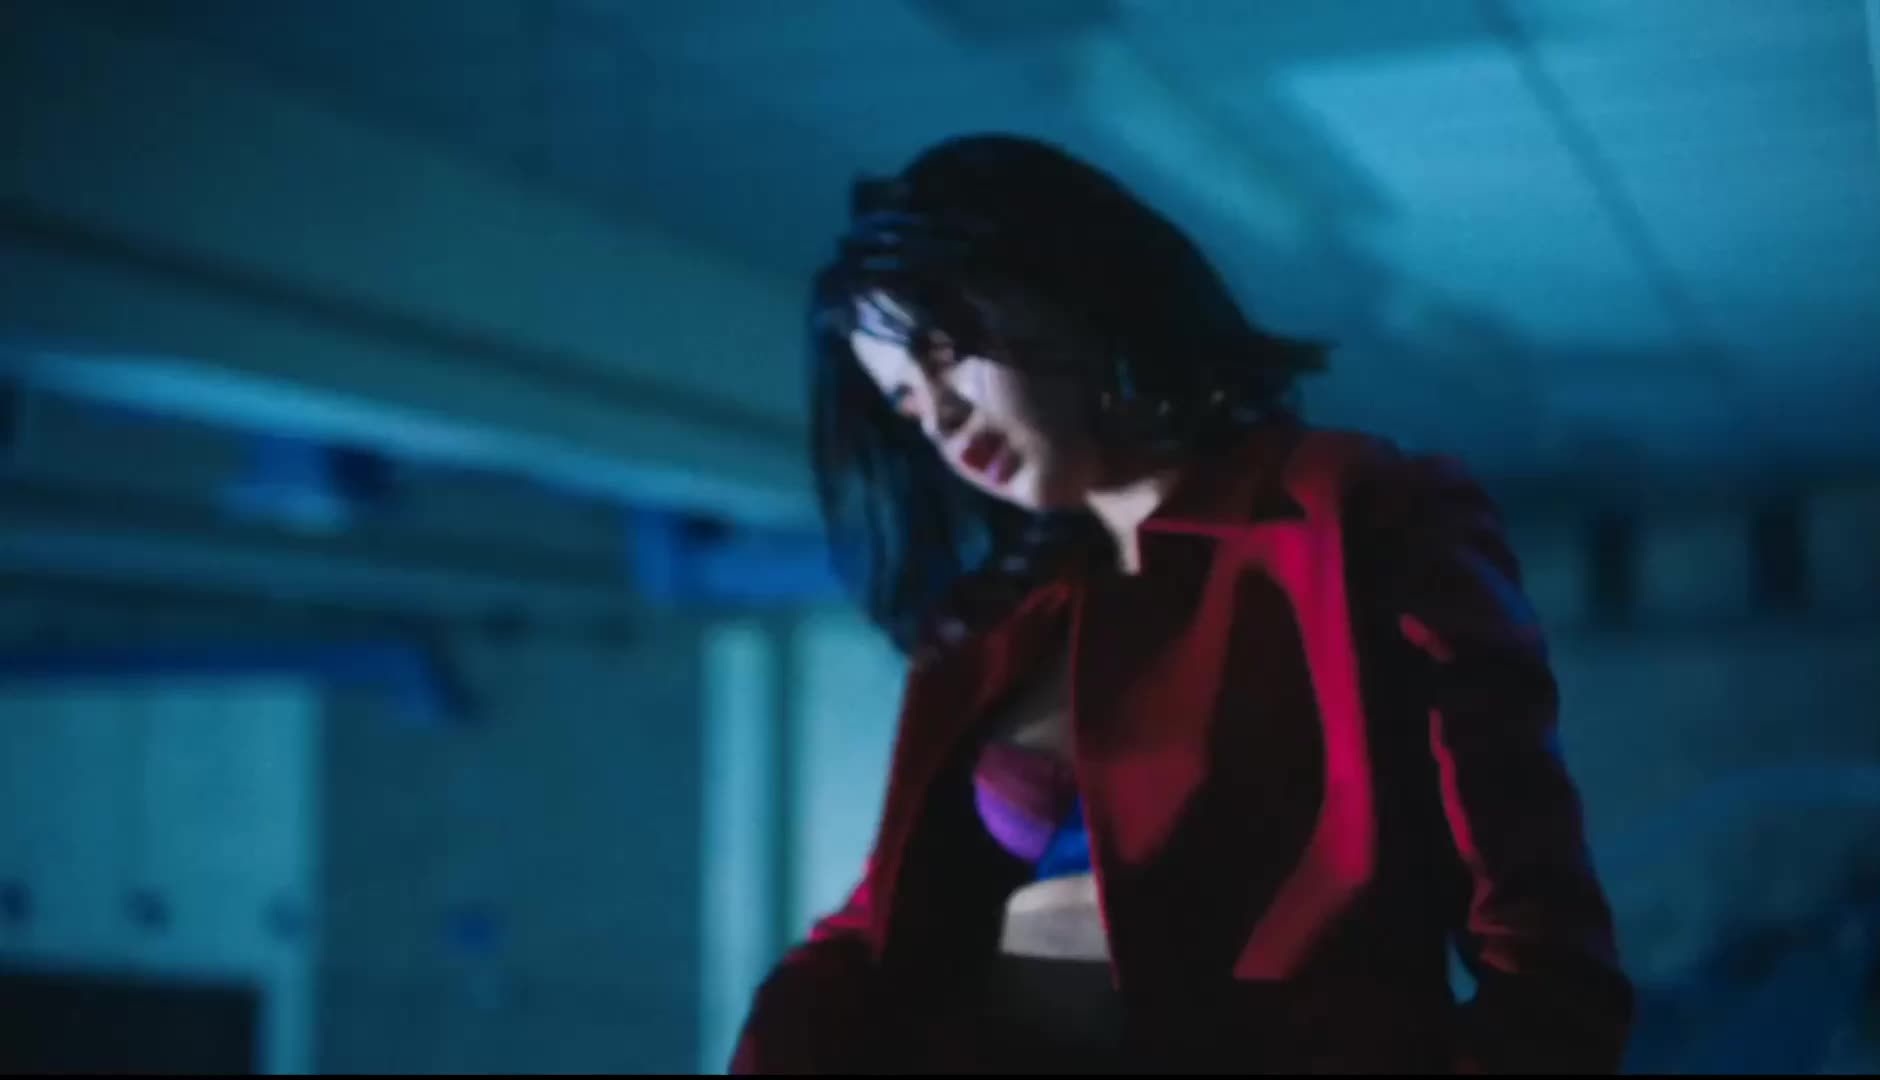 Sultry Selena Gomez video